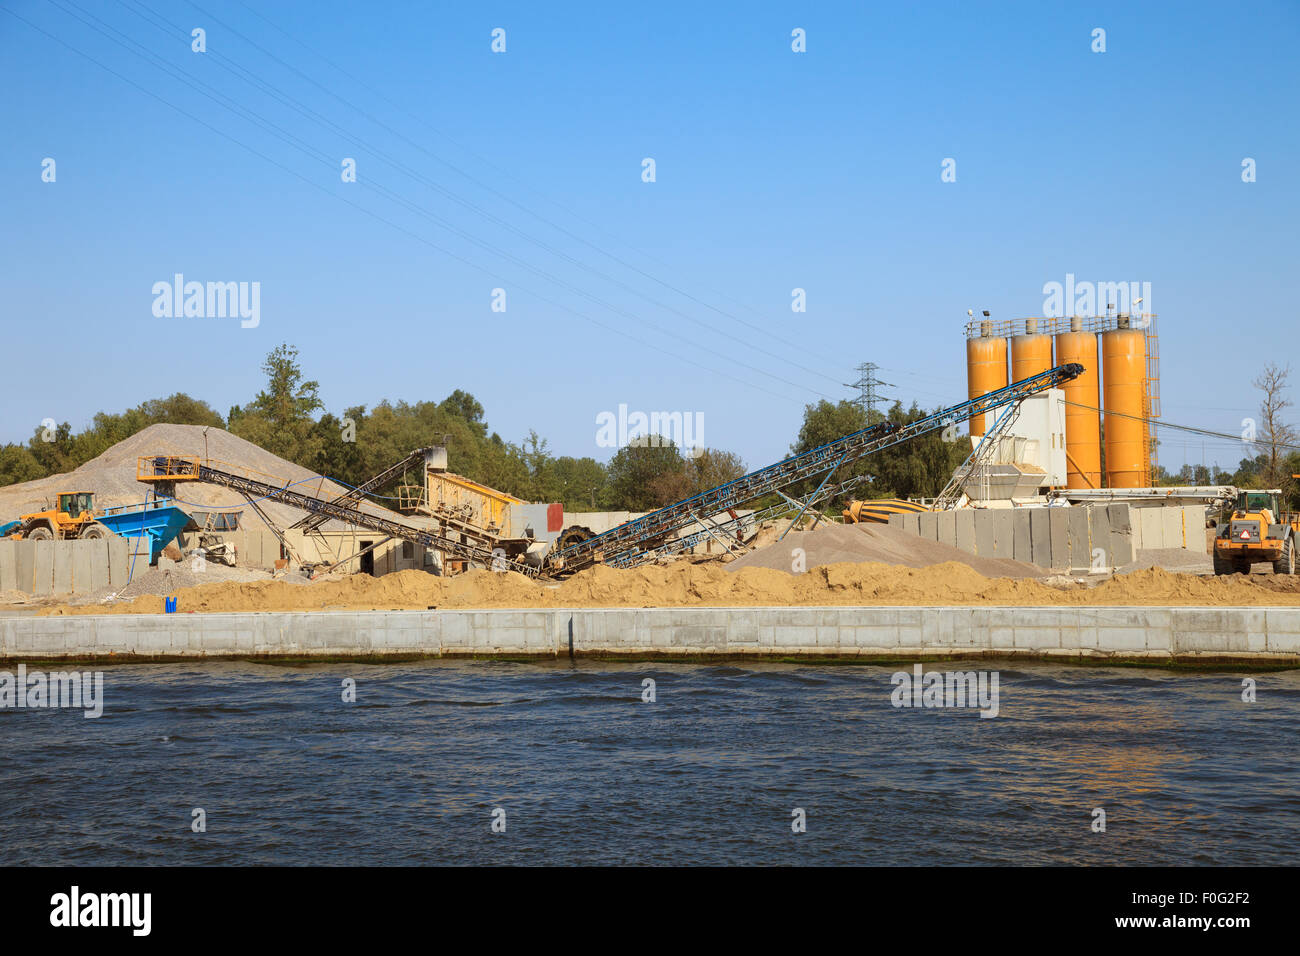 Construction work of new quay in port. - Stock Image